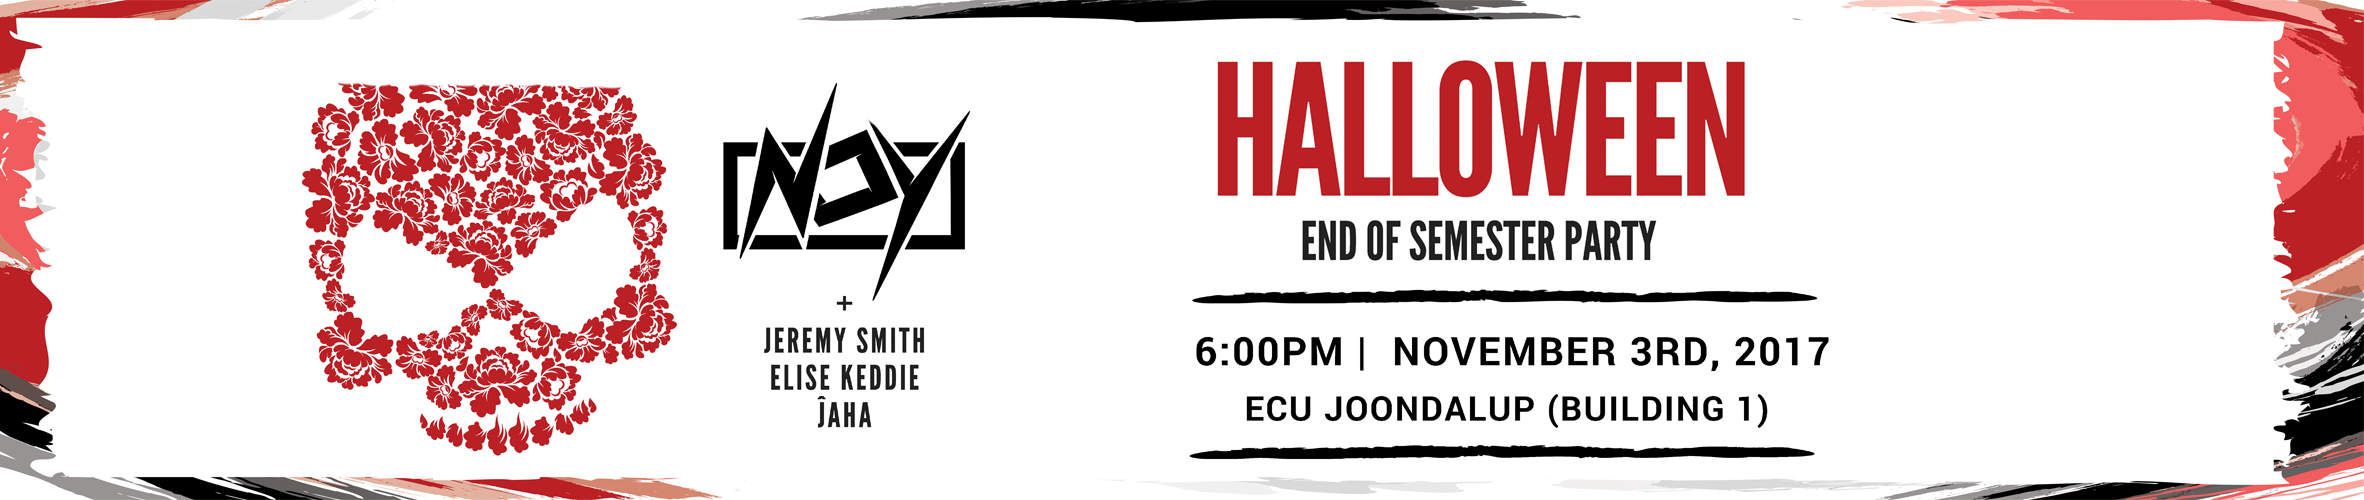 Halloween Party At ECU – Tickets On Sale